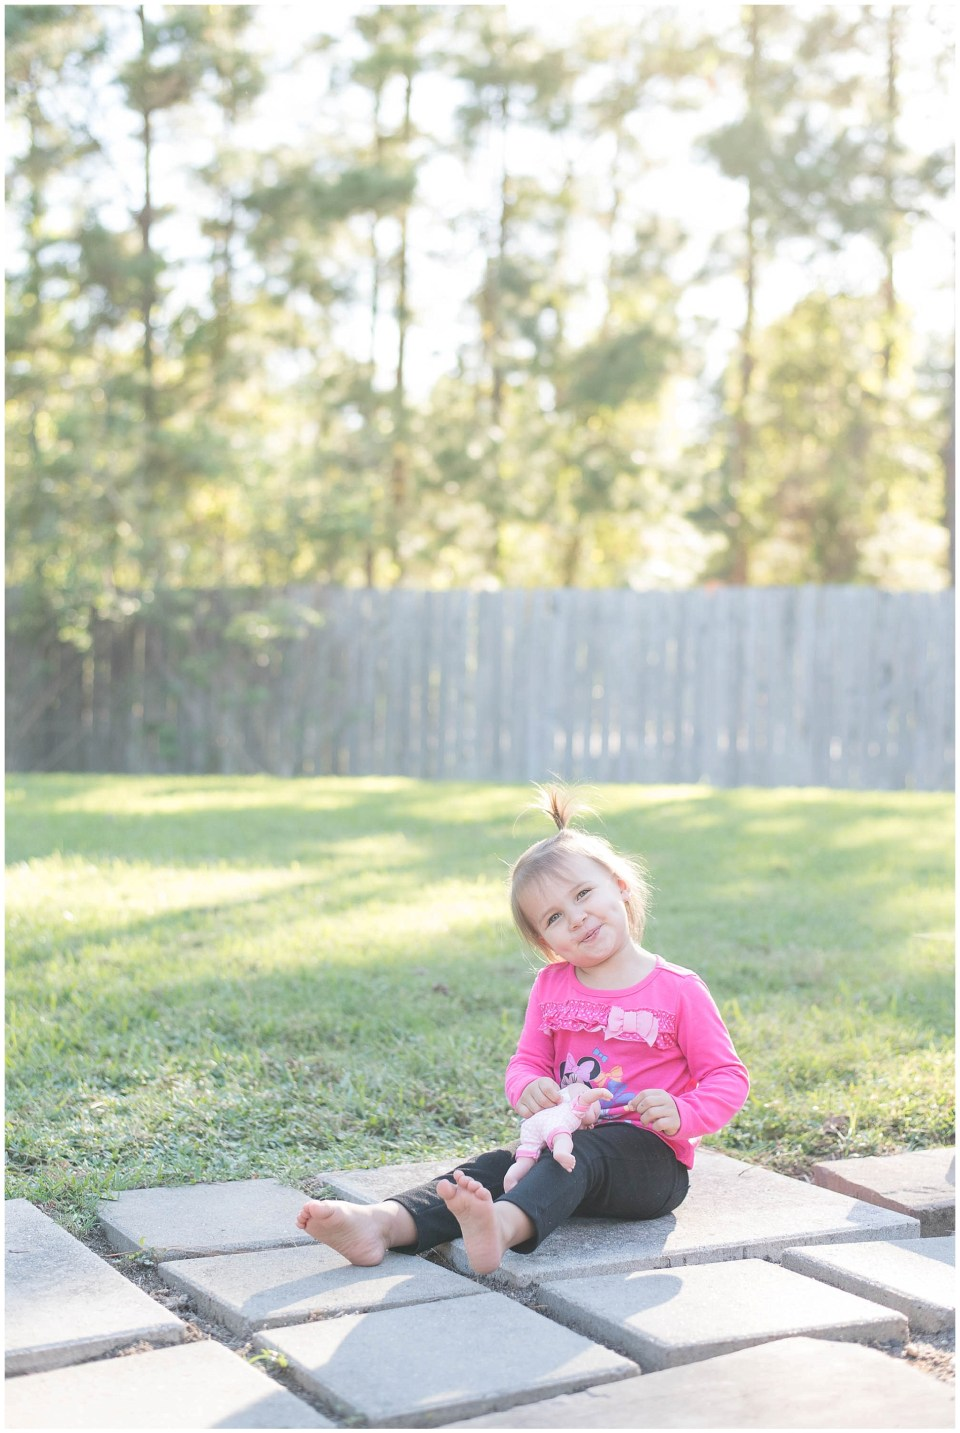 Kingwood child photographer images of daughter, Pumpkin for second birthday